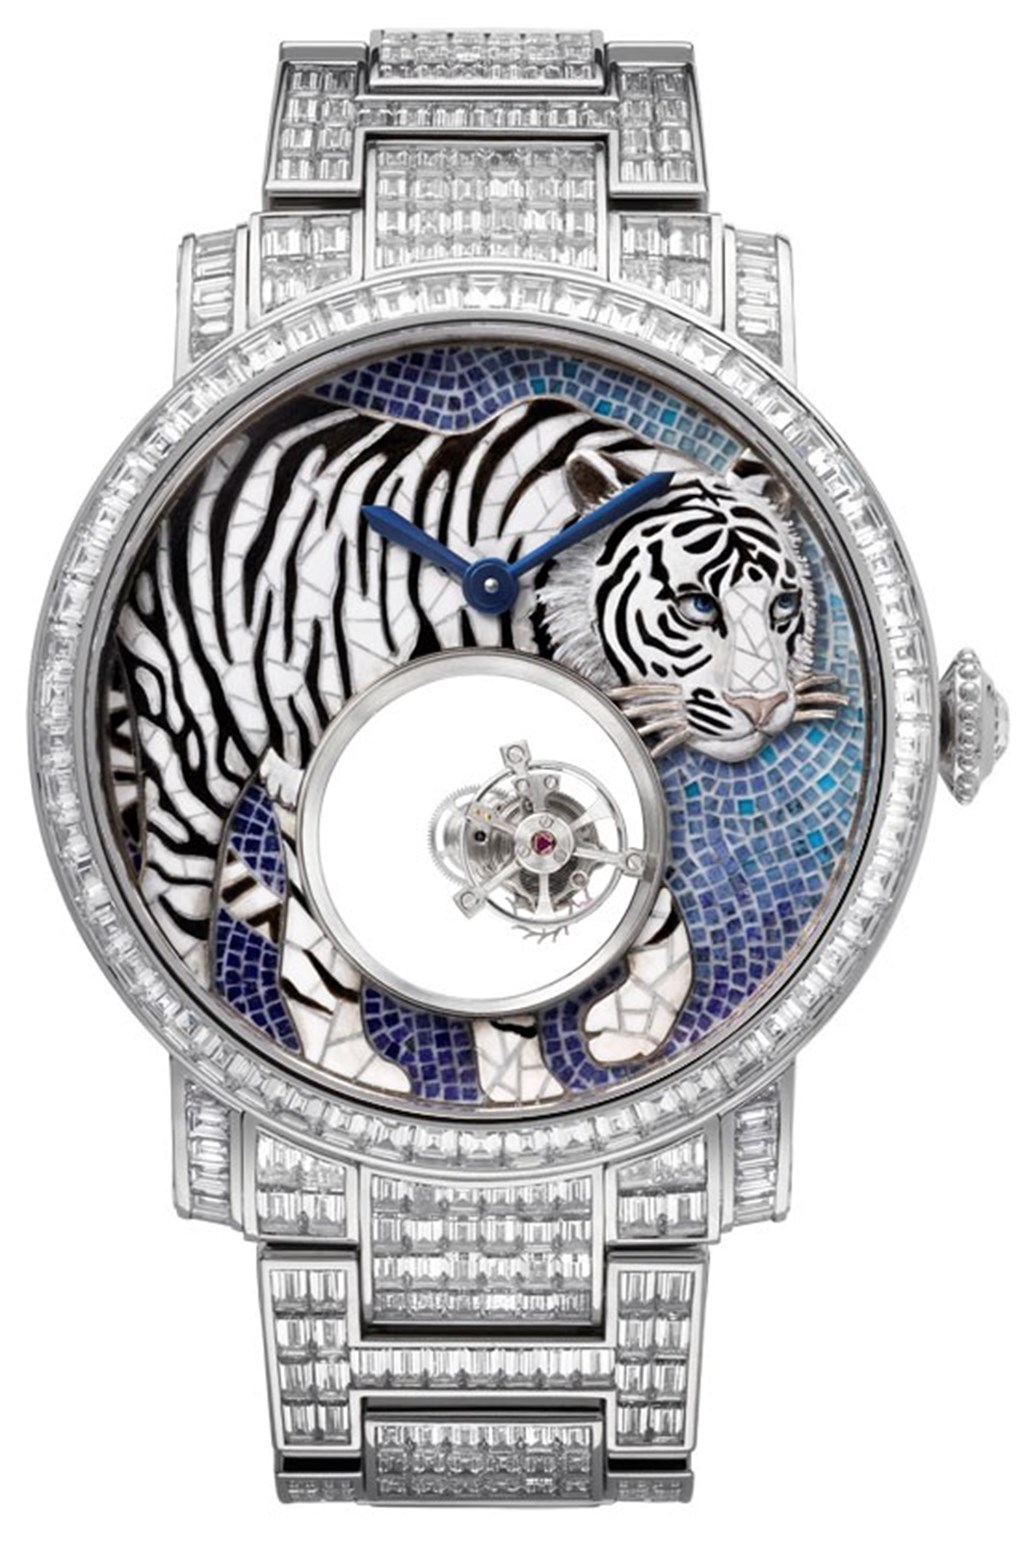 Cartier Rotonde de Cartier, Tiger Deco Stone Mosaic and Miniature Painting